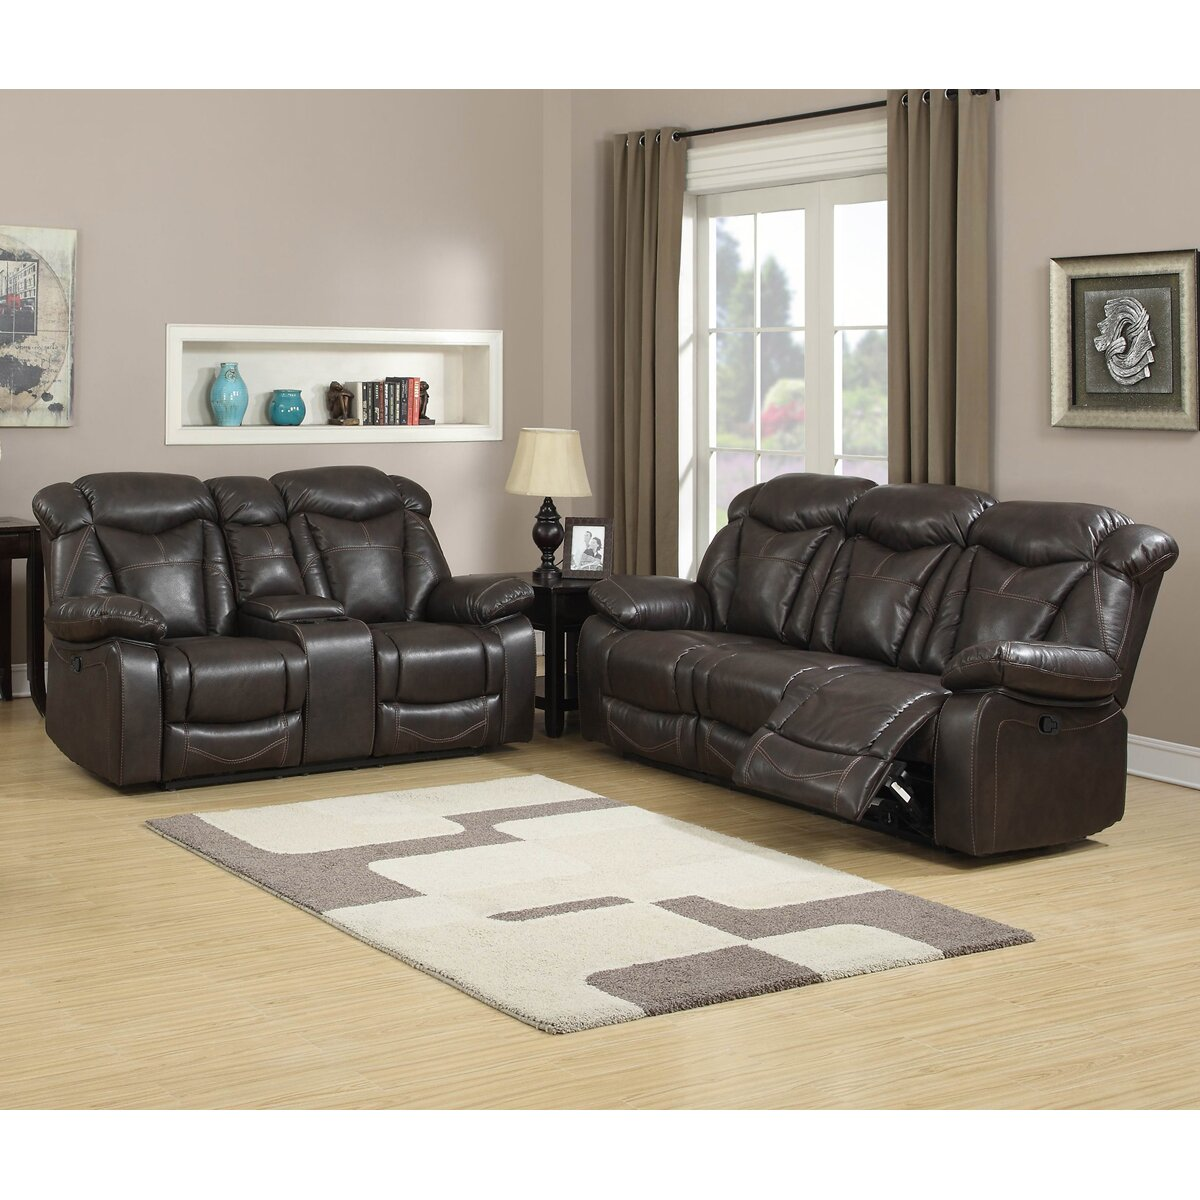 Living in style madison 2 piece living room set for 2 piece living room furniture set